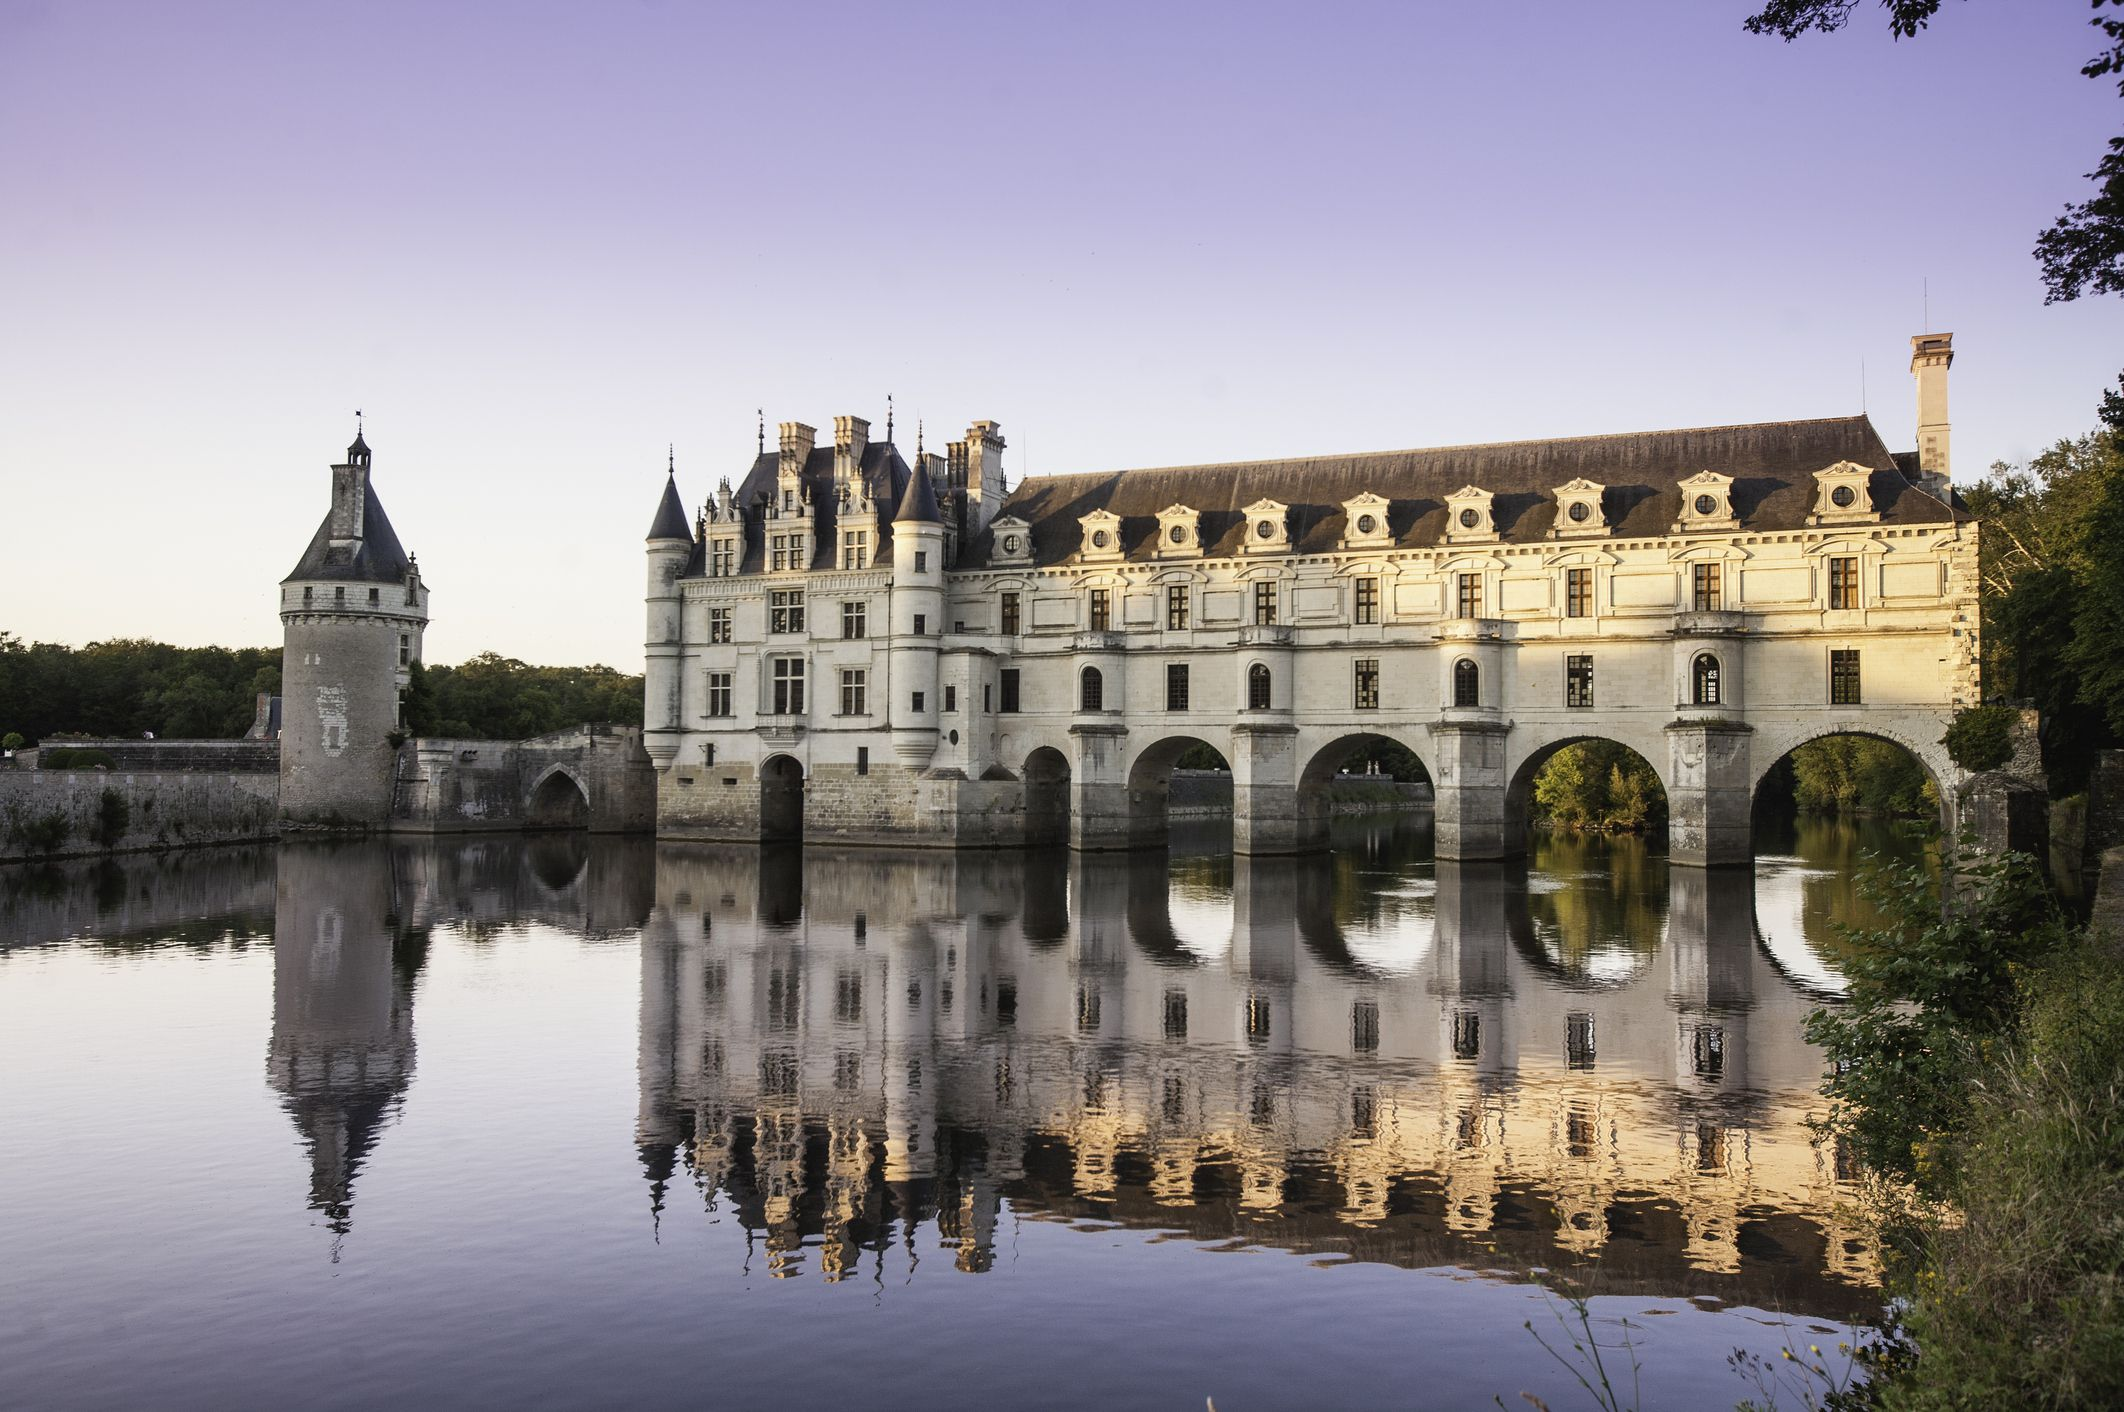 chateau-de-chenonceau-glowing-in-the-sunset-loire-royalty-free-image-1607544630.jpg